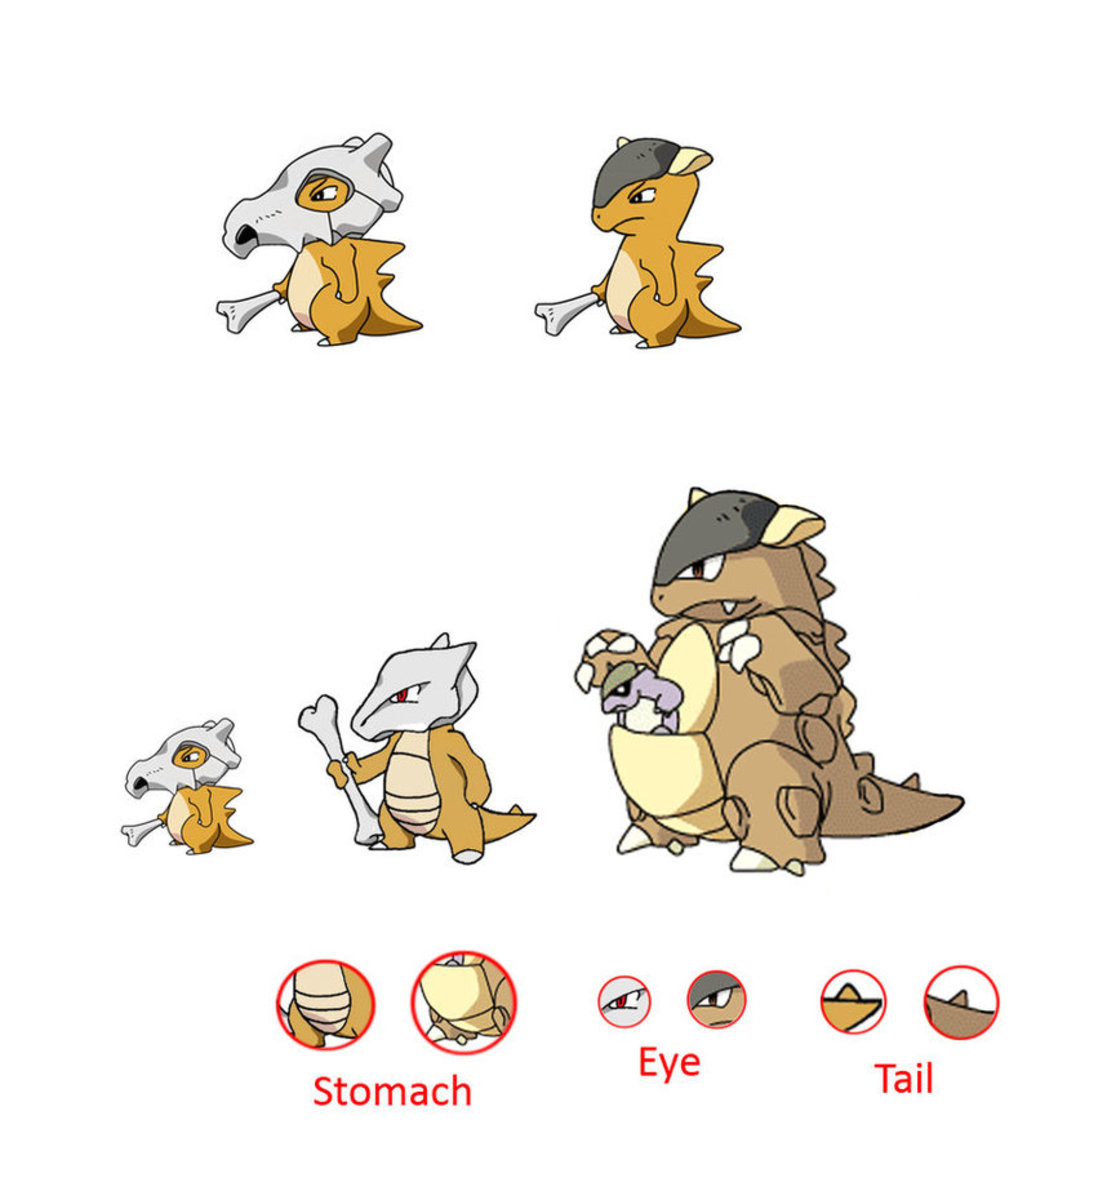 Are Cubone and Kangaskhan connected?